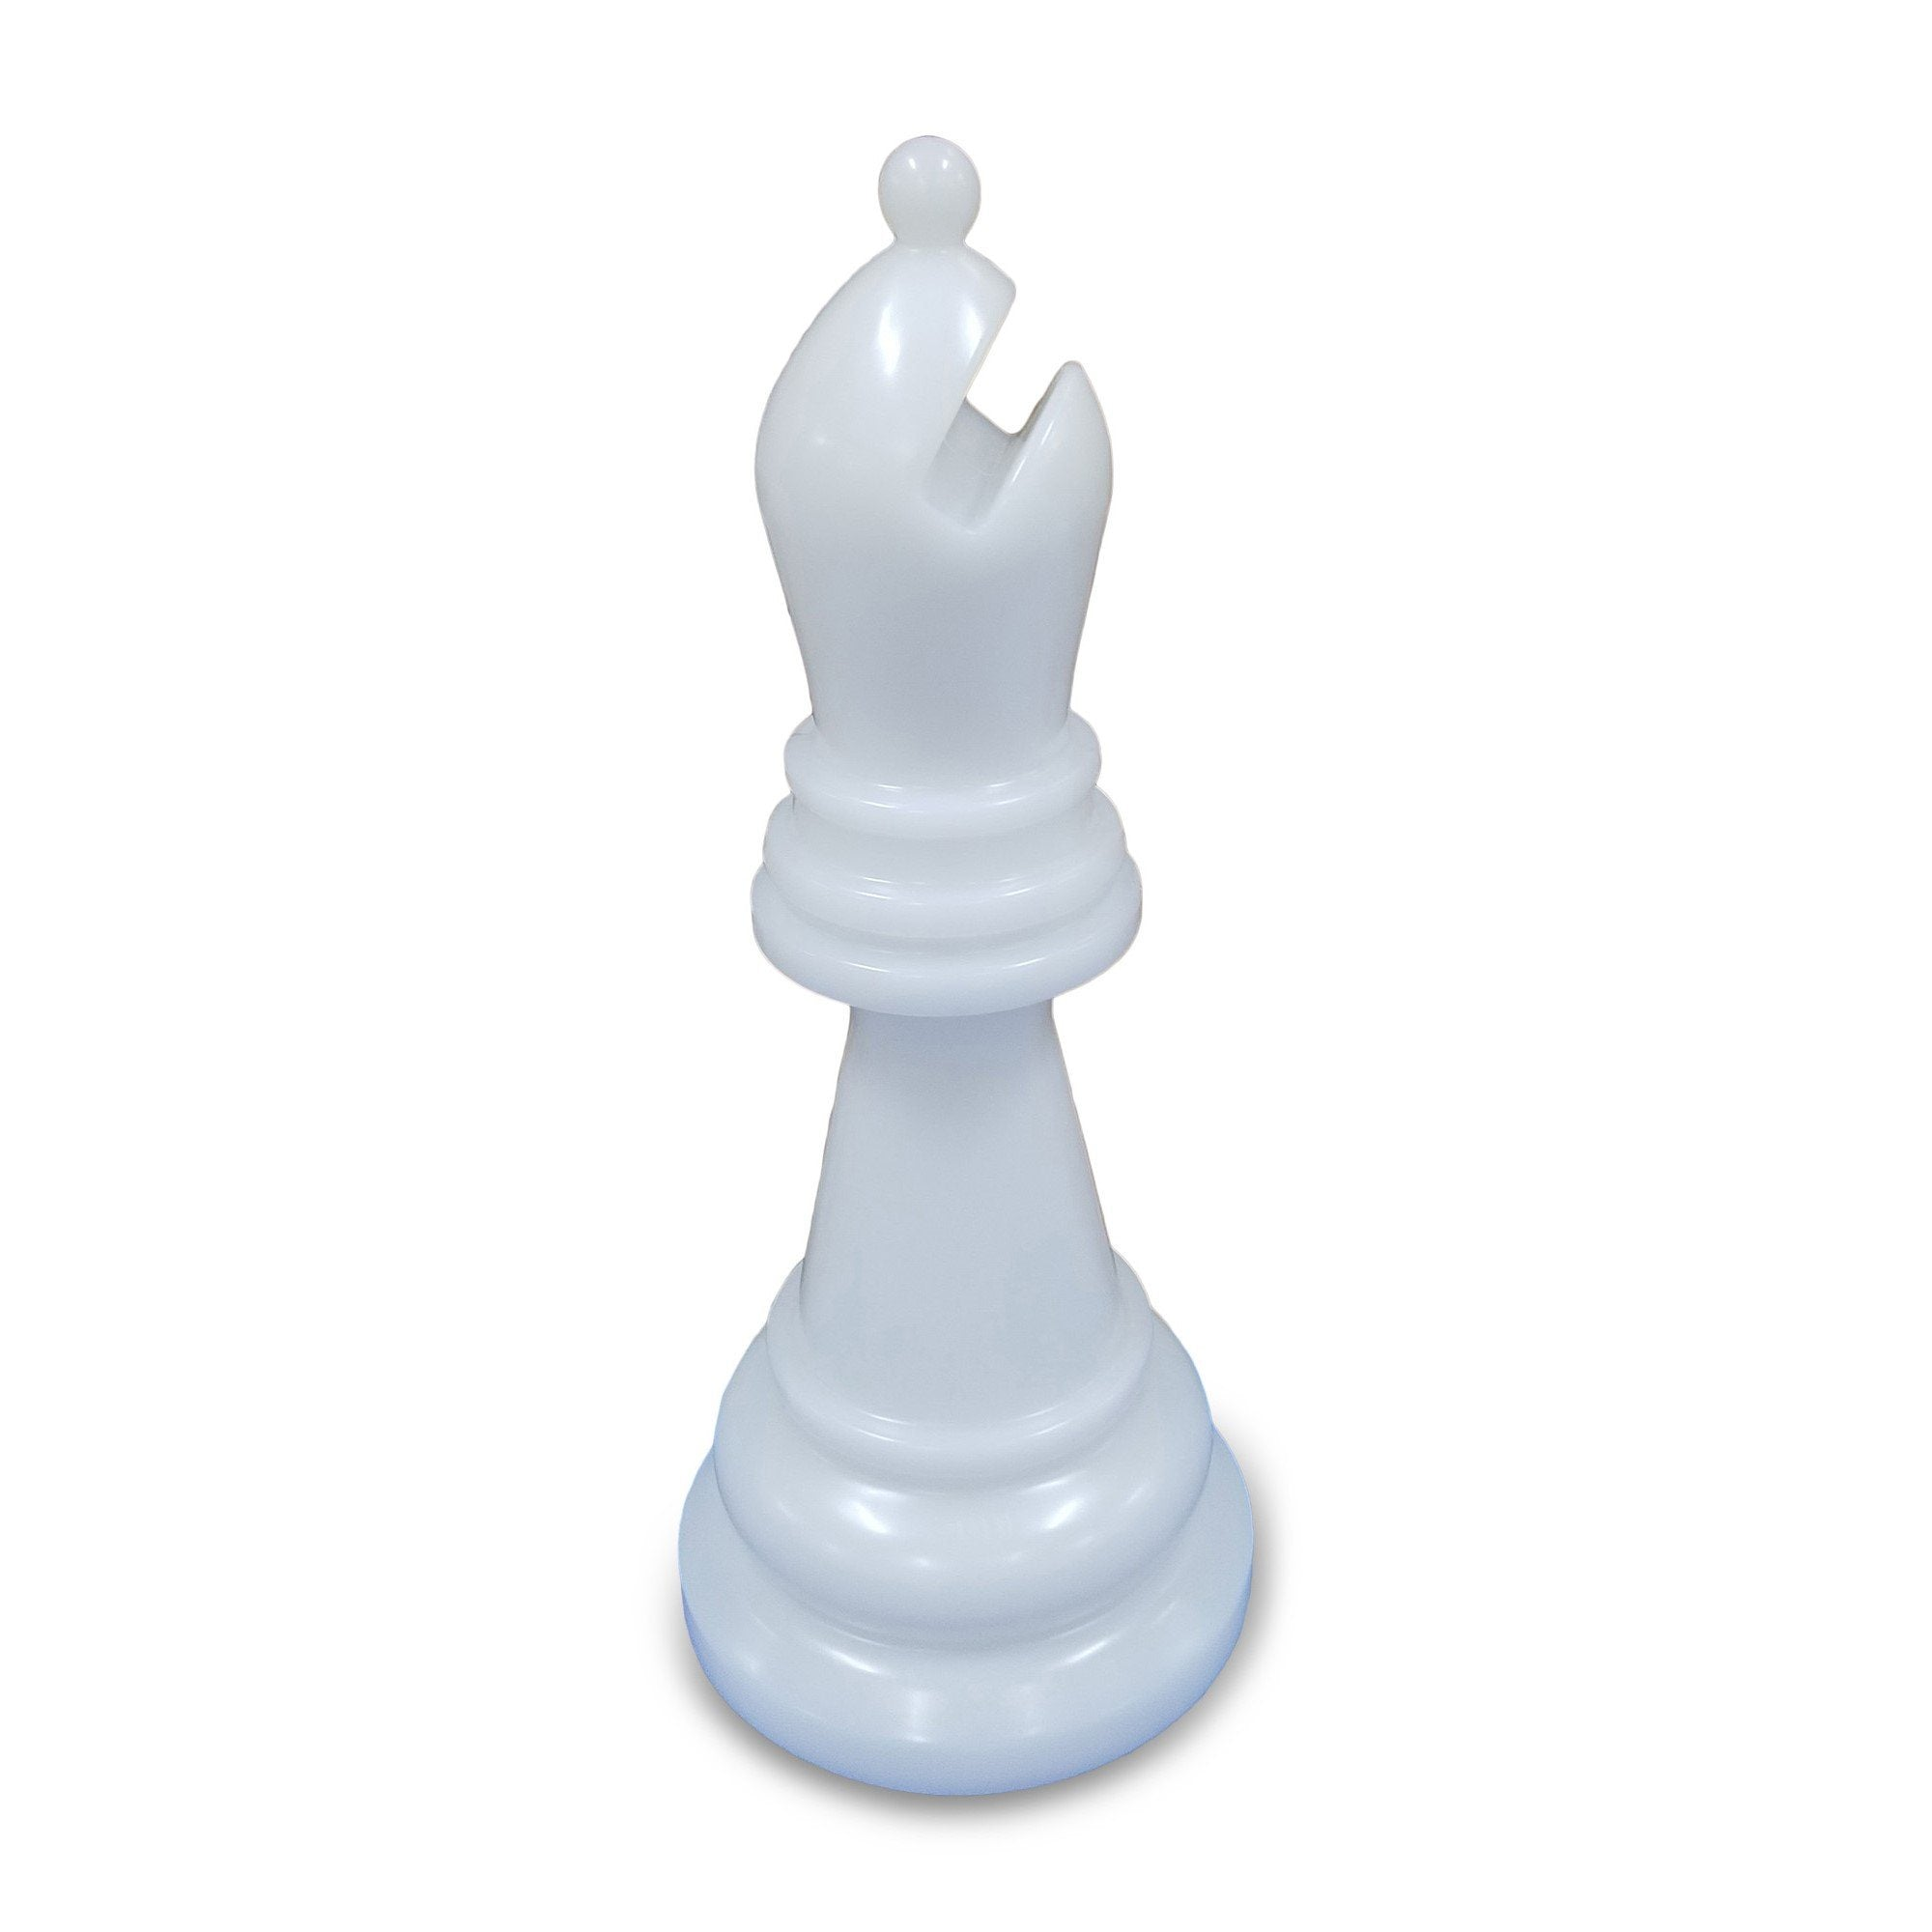 MegaChess 34 Inch White Premium Plastic Bishop Giant Chess Piece | Default Title | MegaChess.com